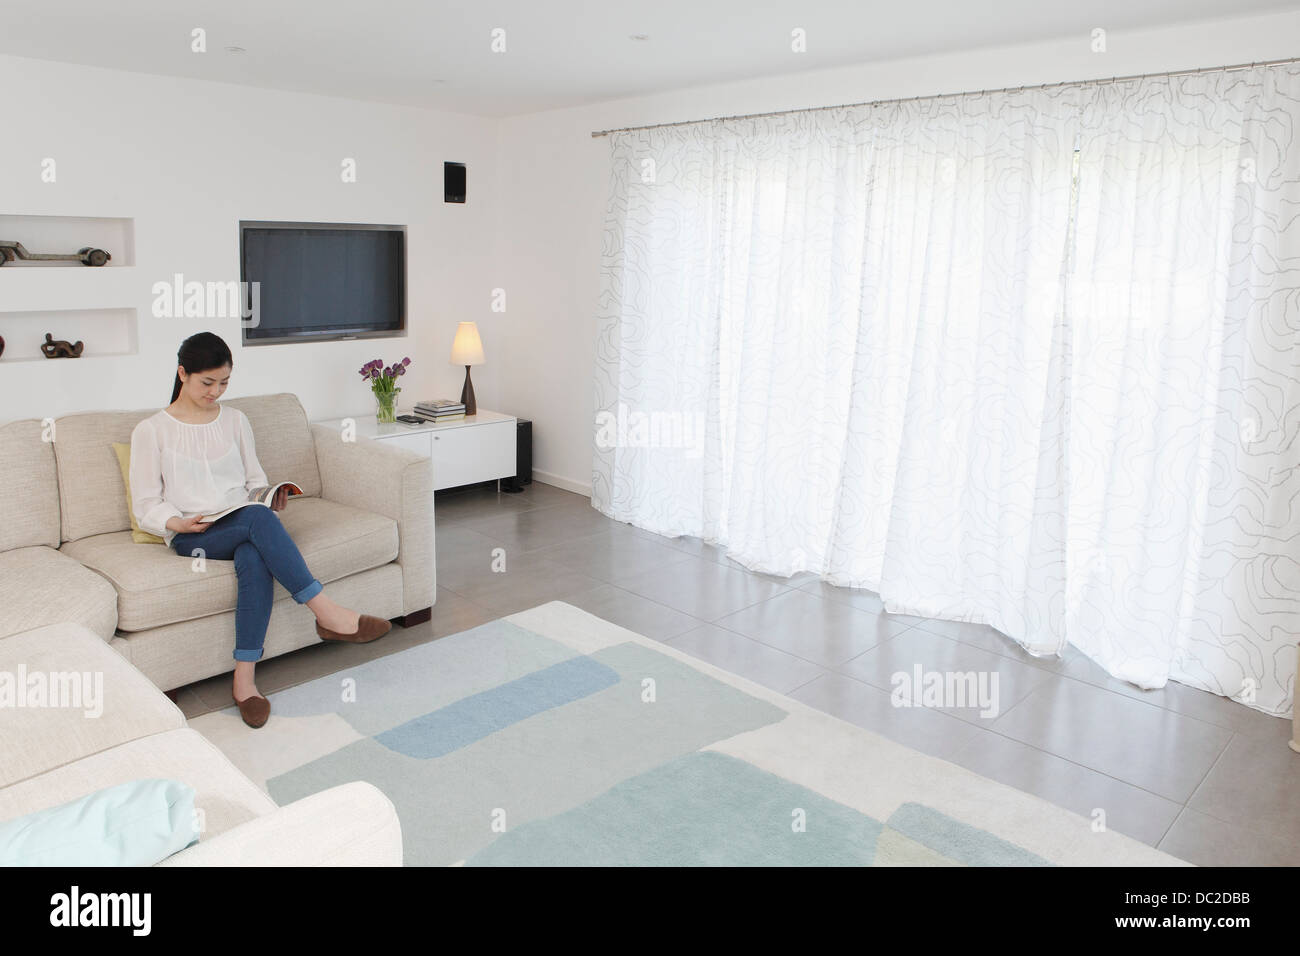 Woman reading in living room - Stock Image